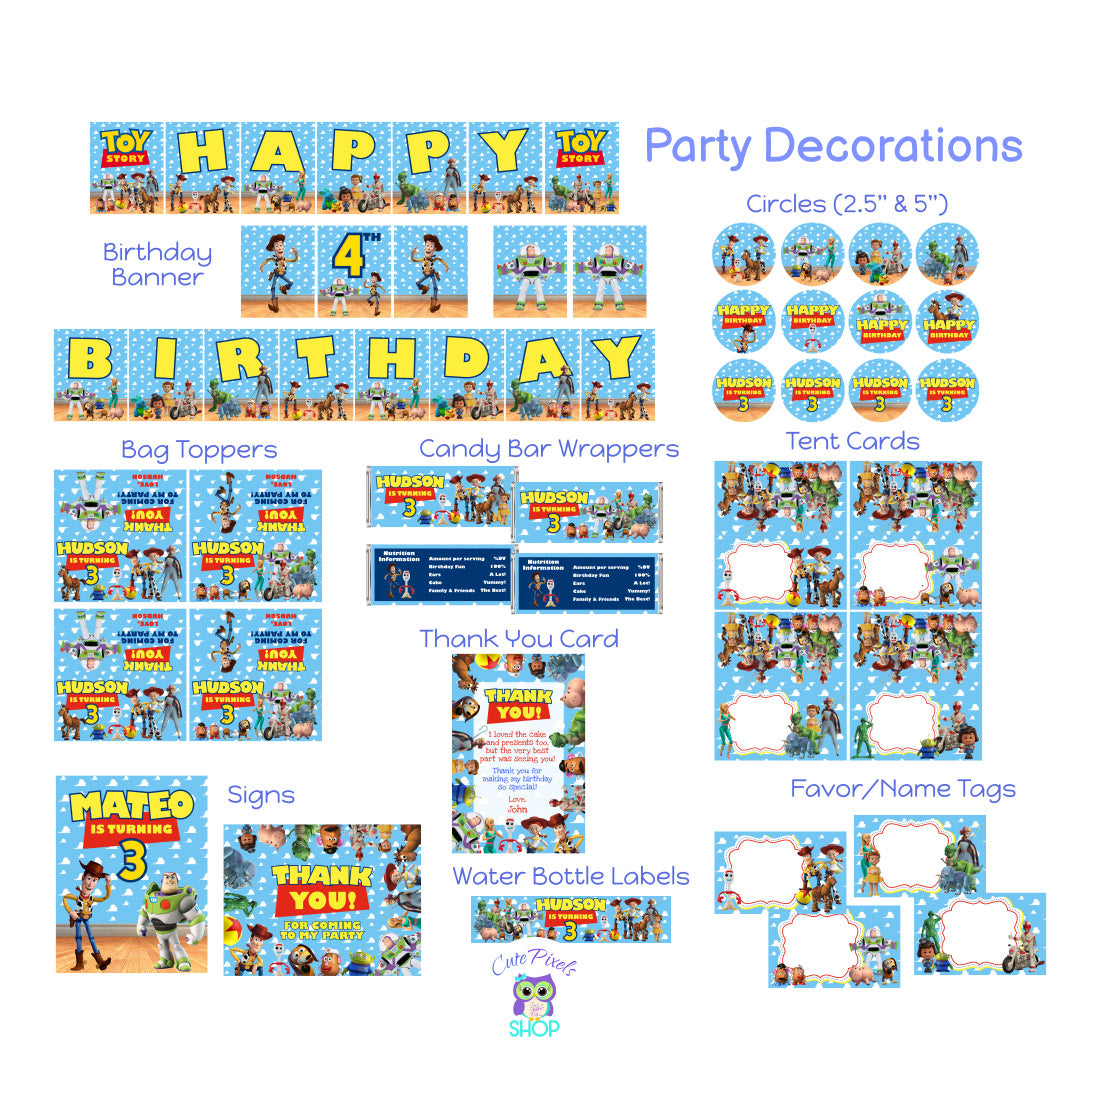 Toy Story Party Decorations. Including Birthday Banner, Cupcake Toppers, Bag Toppers, Candy bar Wrappers, Place Cards, Signs, Thank You Card, Water Bottle Labels and Favor Tags with all Toy Story 4 characters